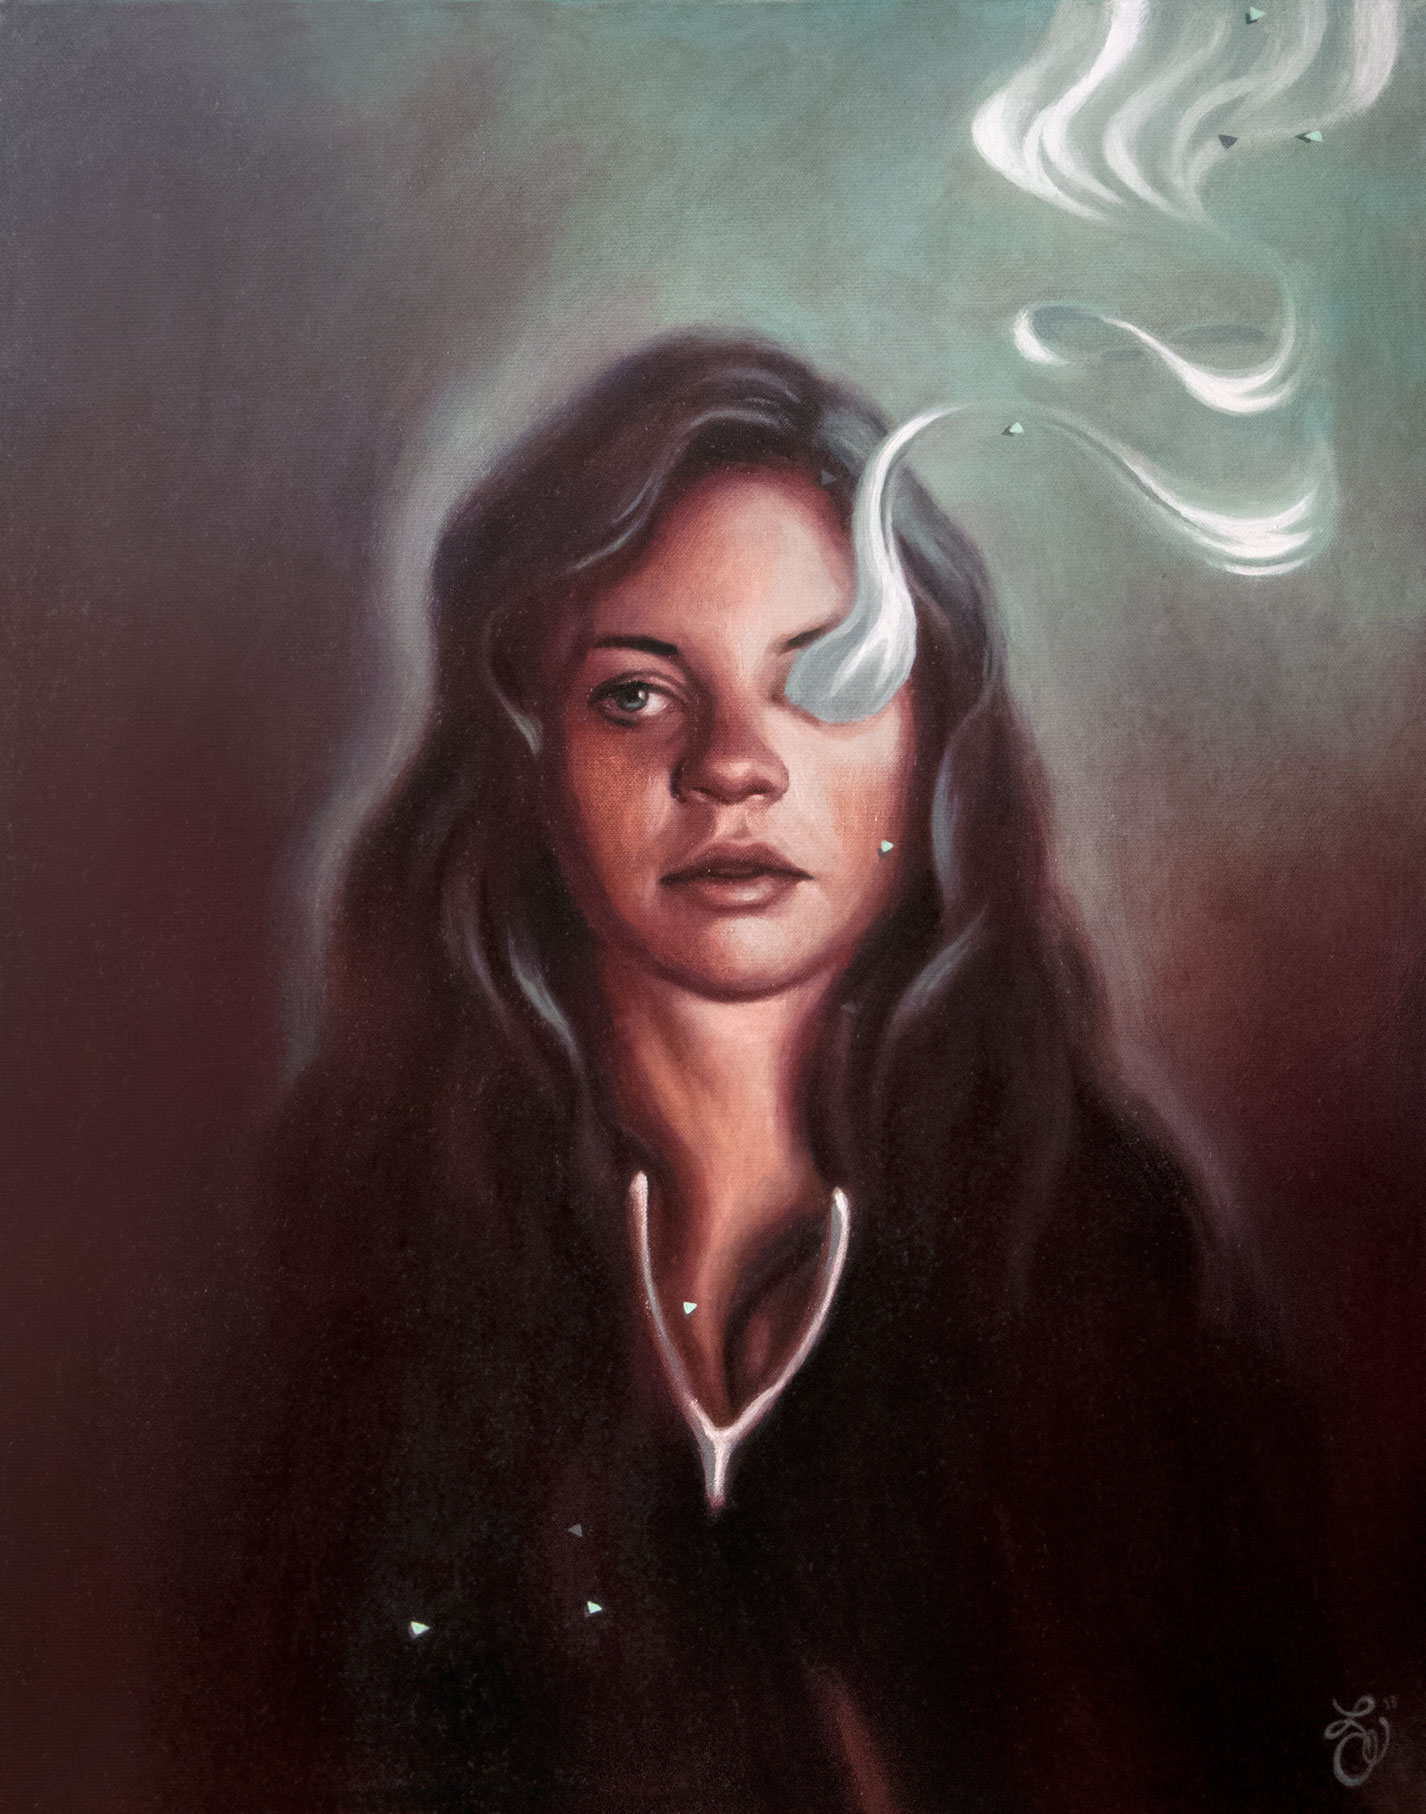 Large pop surrealist figurative portrait by oil painter from Philadelphia, PA Elizabeth Virginia Levesque. A young white woman with long, wavy dark hair is featured in the center of the canvas. A large wishbone hangs in the air eerily beneath her chin. Ectoplasm-like smoke floats out of her right eye socket and rises to the top right of the canvas. The vapour swirls into the shape of the symbol for infinity. The woman stares directly at the viewer. Her lips are slightly parts as if she is about to speak.